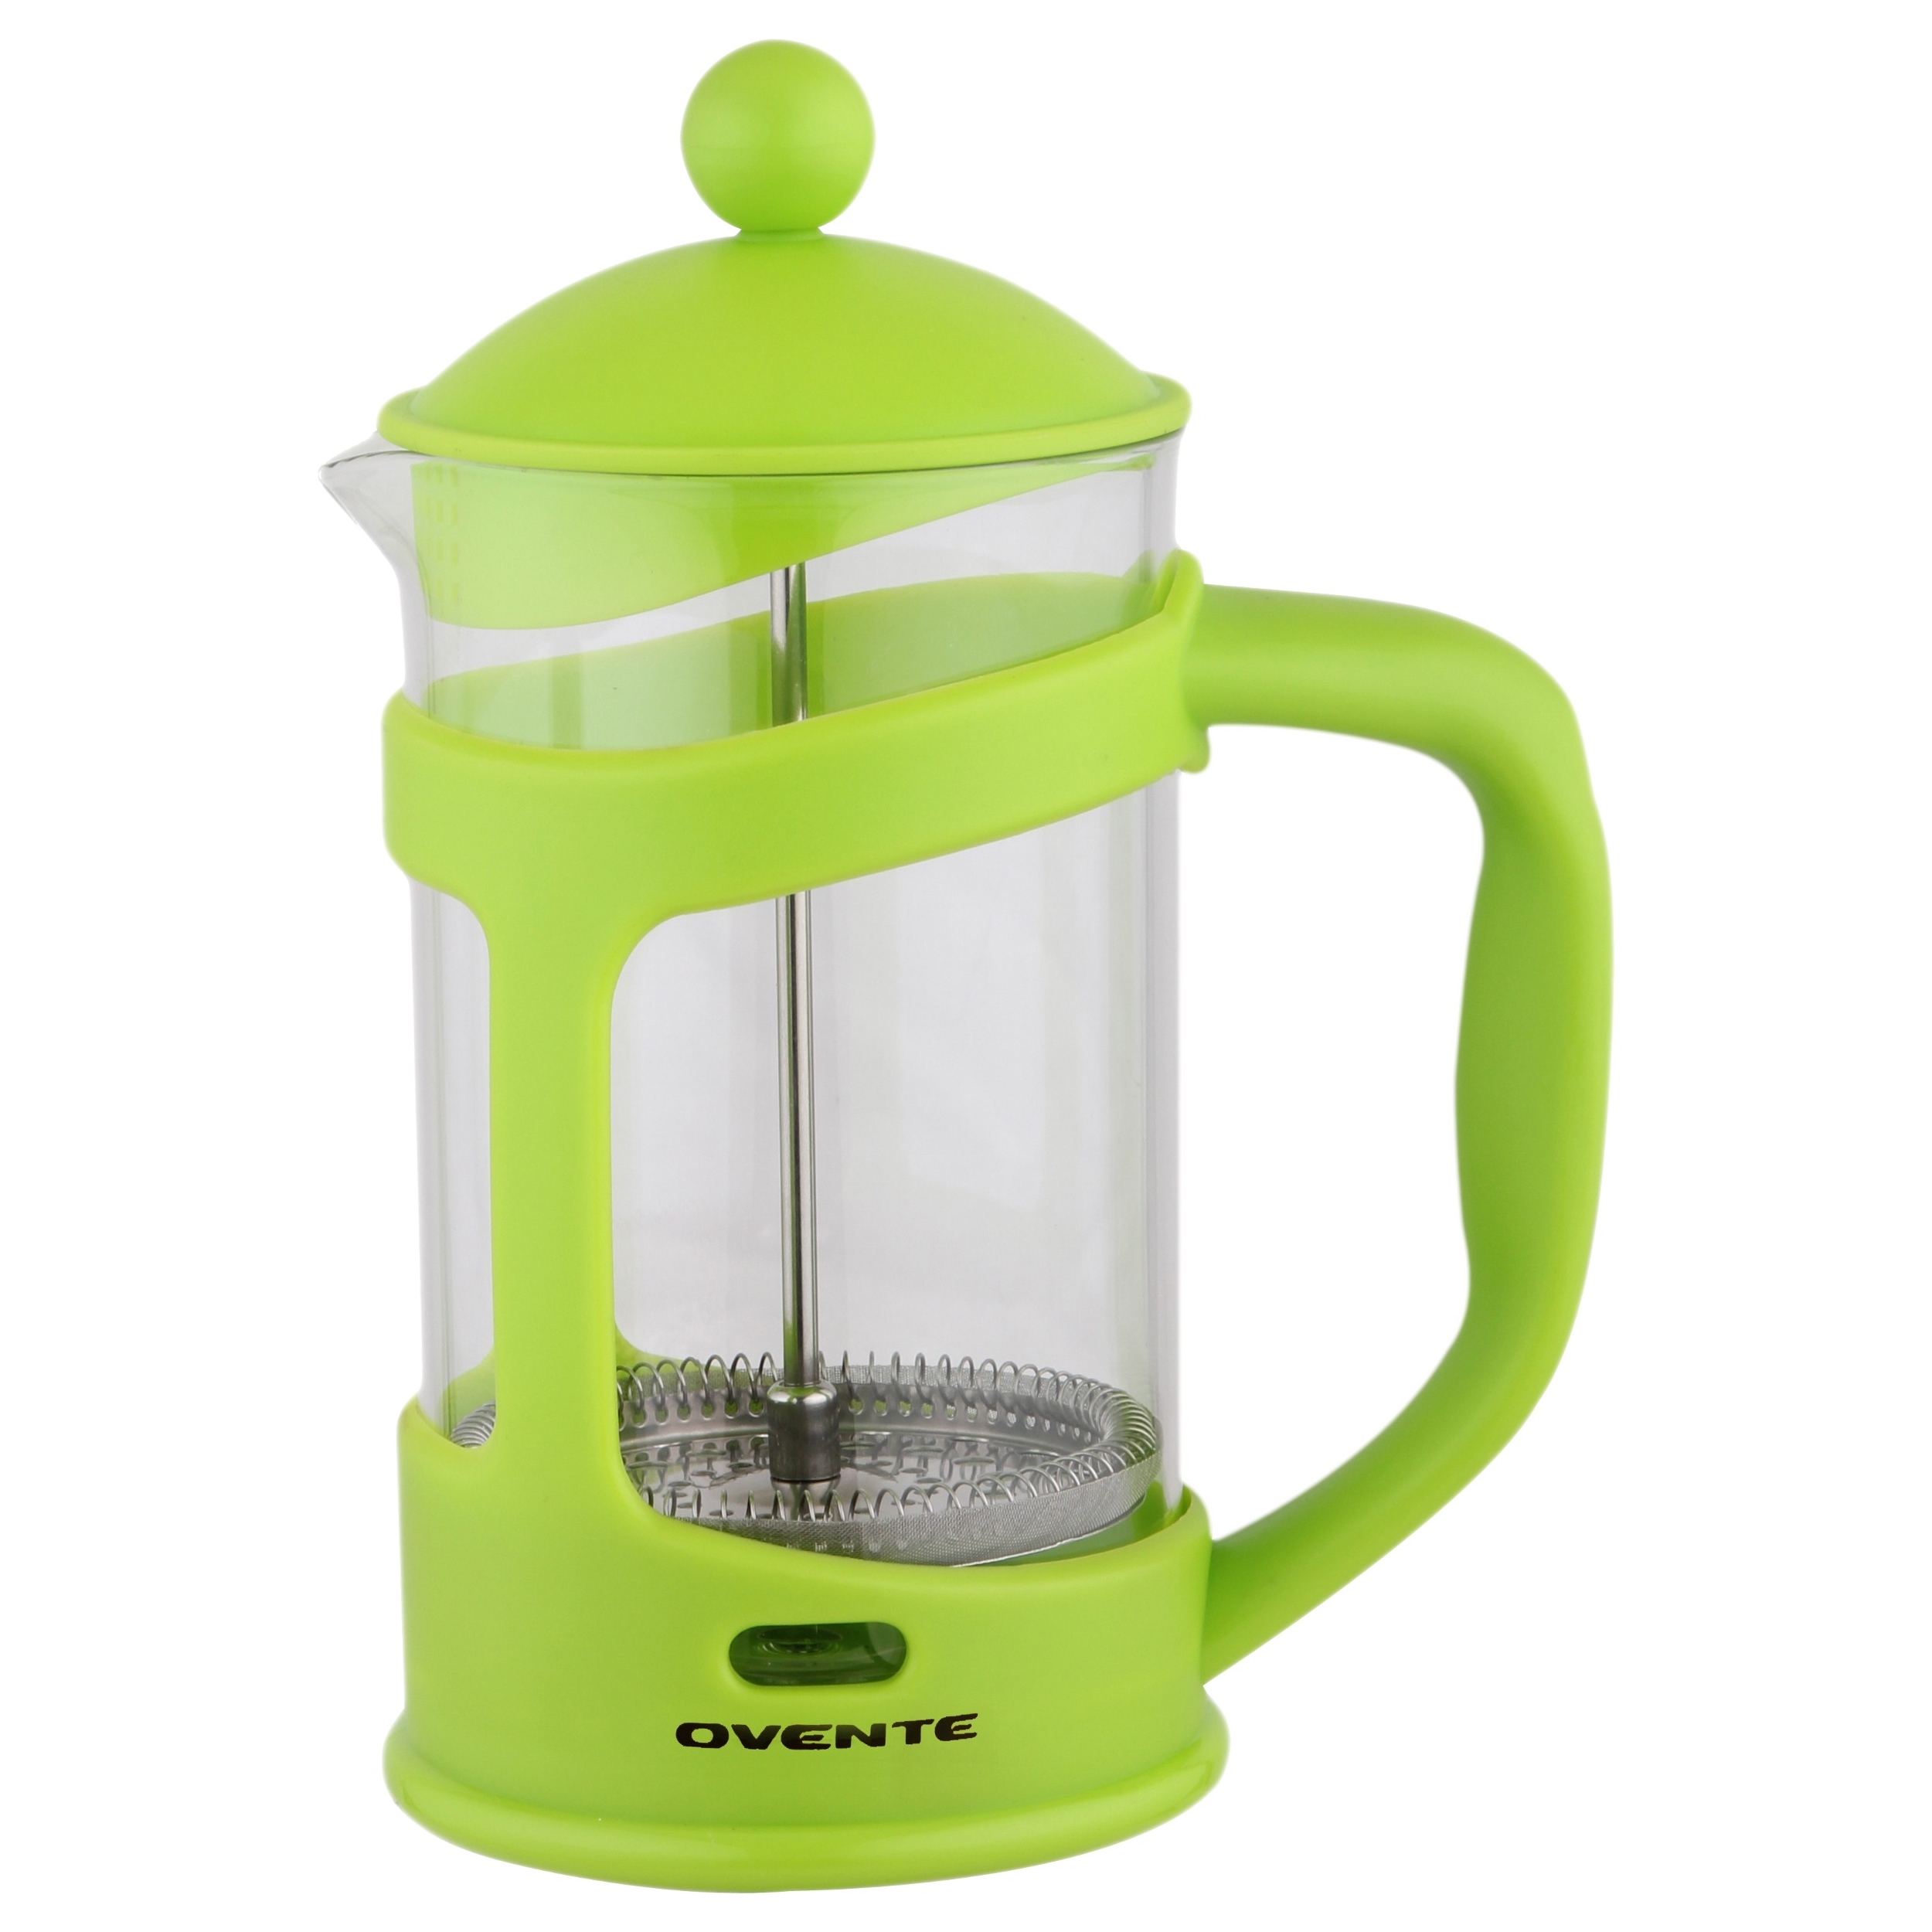 Ovente French Press Cafeti?re Coffee and Tea Maker, Heat-Resistant Borosilicate Glass, 34 oz (1005 ml), 8 cup, Purple (FPT34P)